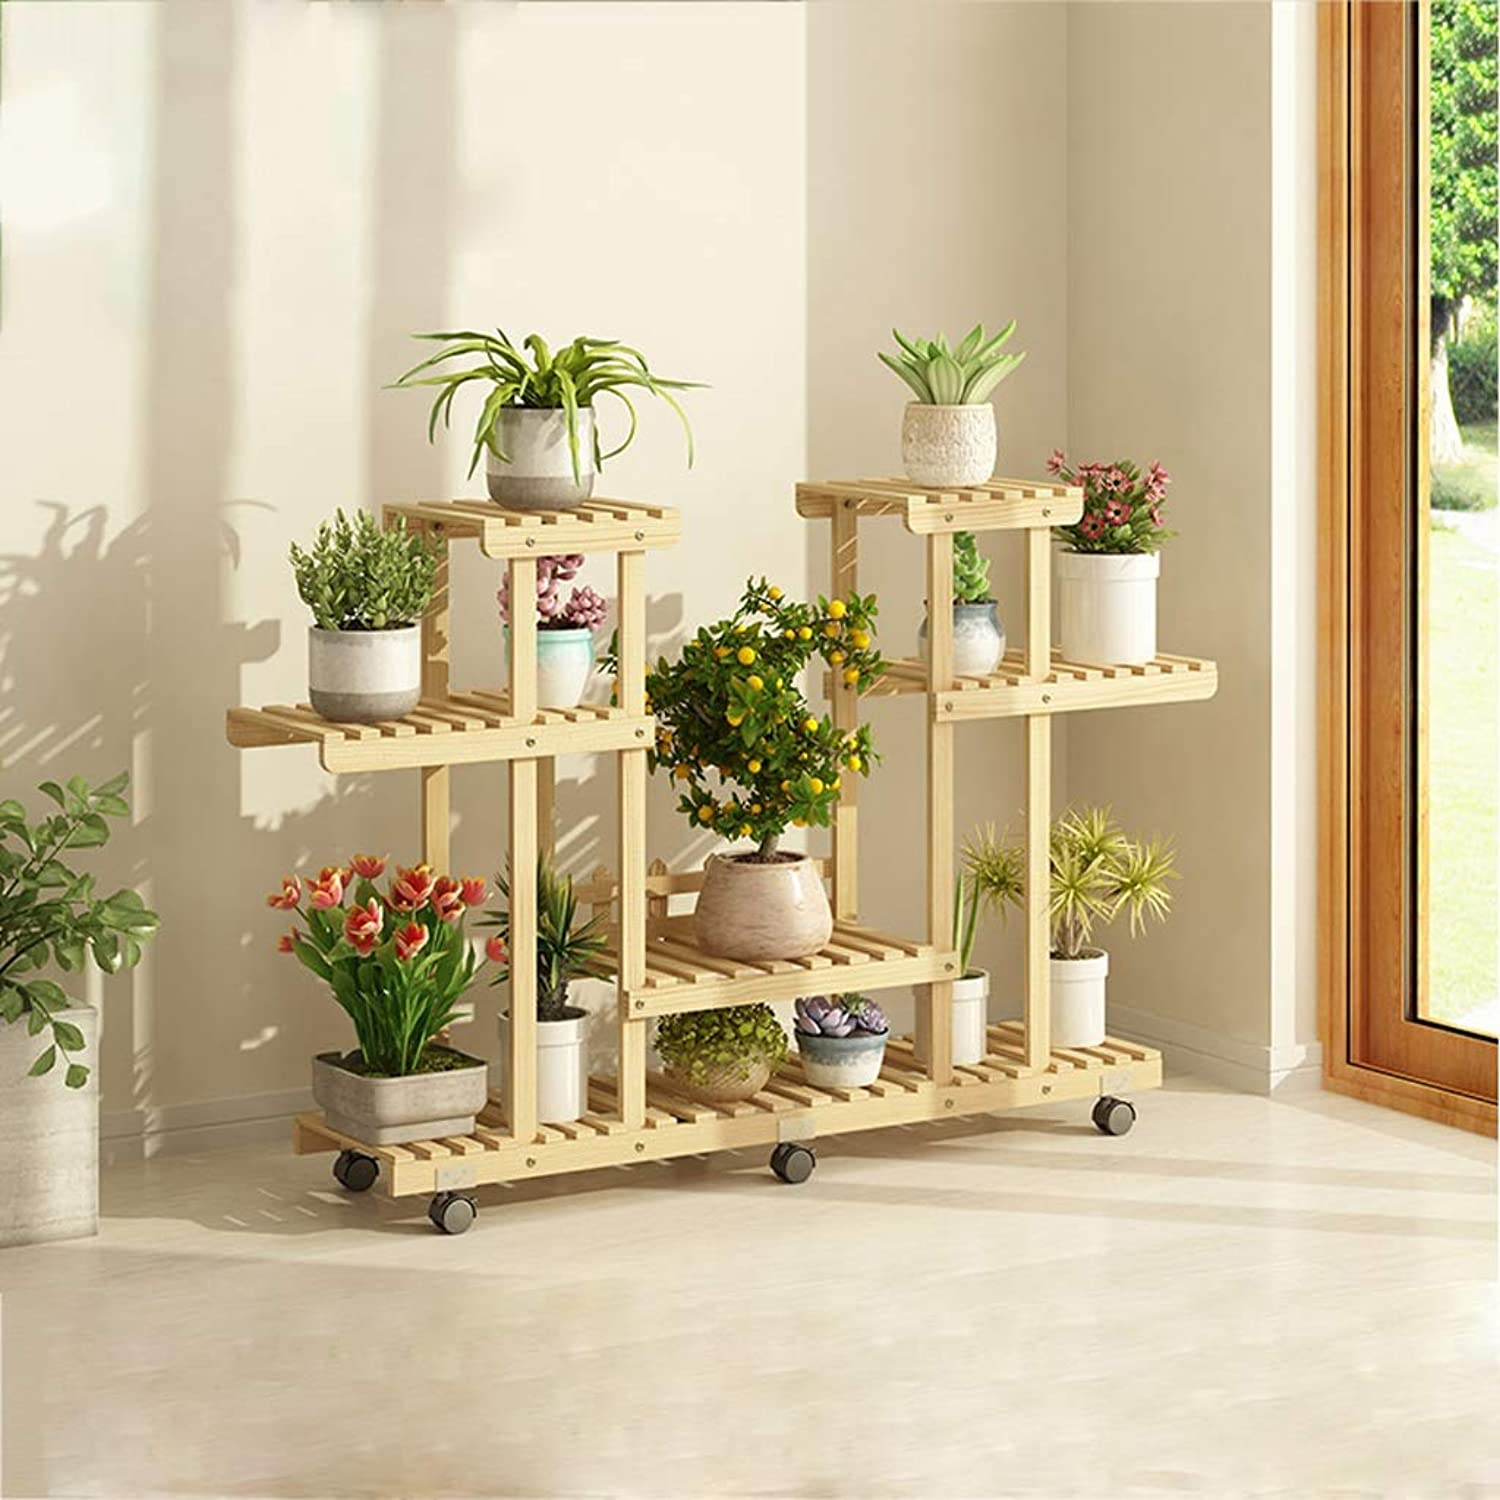 SLH Wheeled Floor-Standing Flower Stand Multi-Story Indoor Balcony Living Room Natural color Plant Shelf